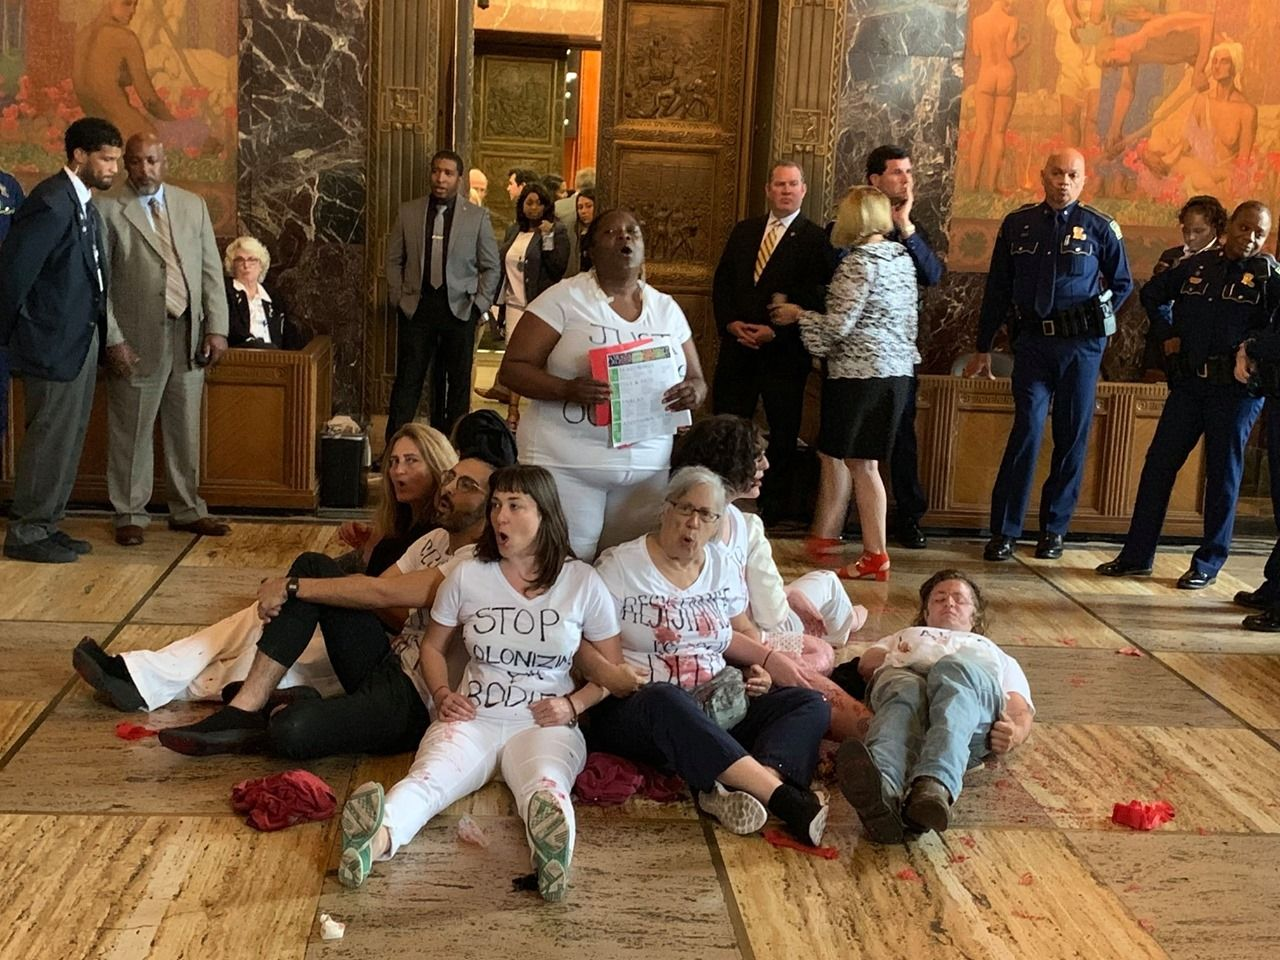 Protesters stage a 'die-in' over proposed abortion bill in Louisiana (Photo:{ }New Orleans Abortion Fund via Storyful)